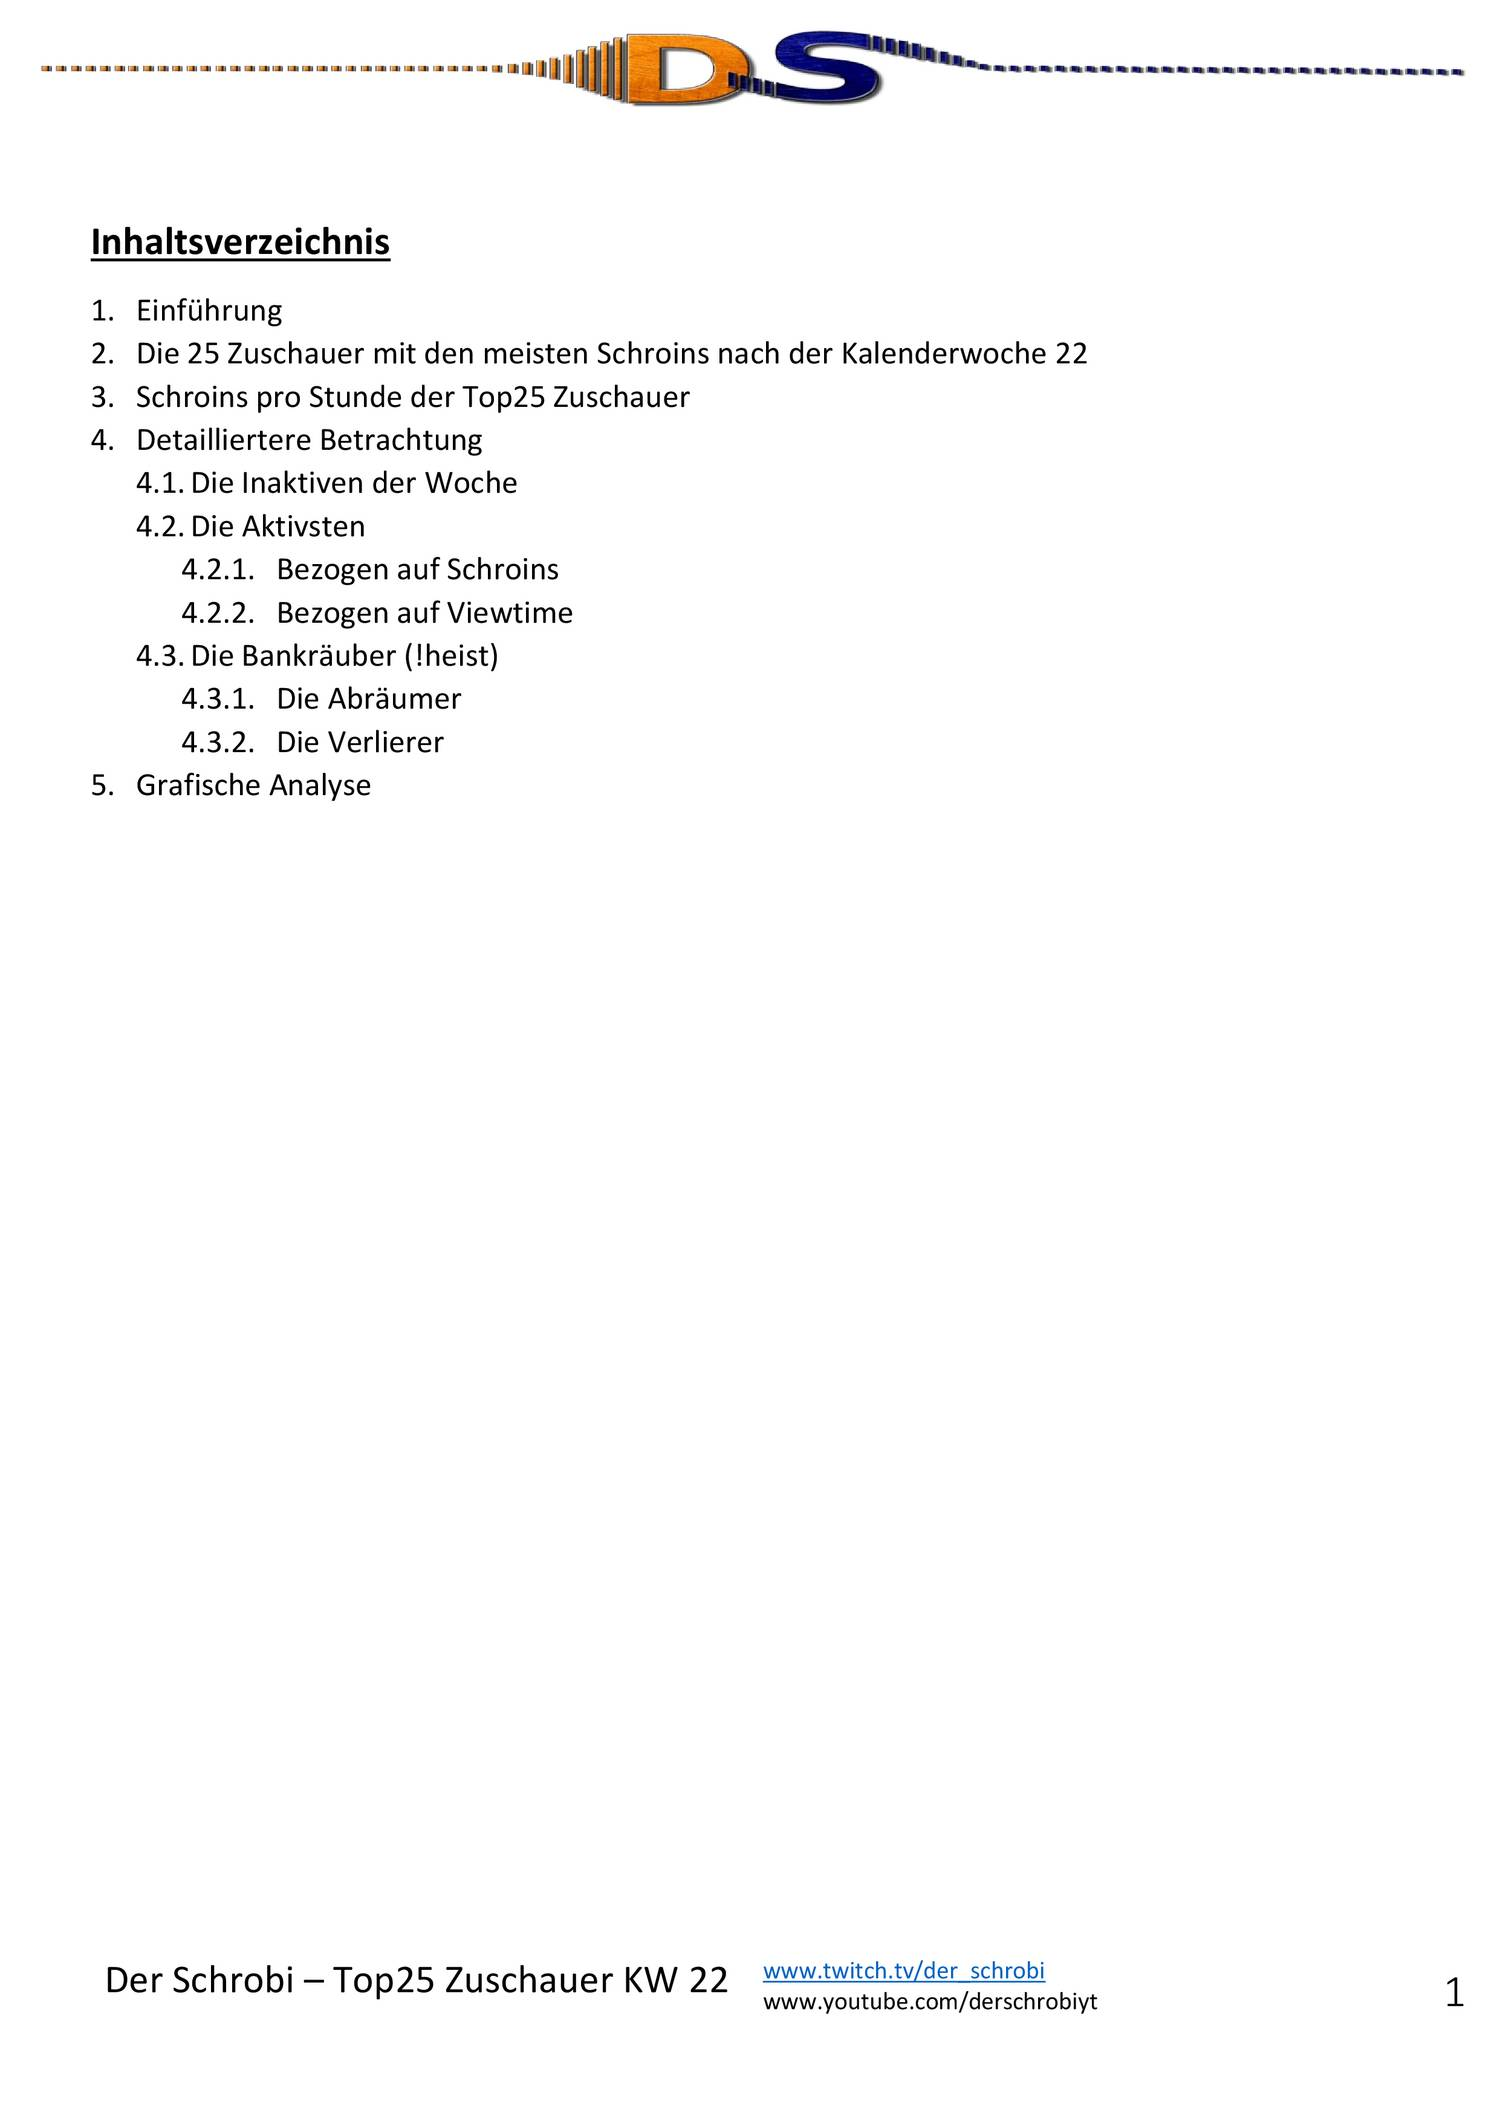 Papa 20 A Guide 3 28 pdf in addition Auto as well Anschreiben Bewerbung pdf likewise L0COIbIM6djxZjSQU additionally Photofull. on embed